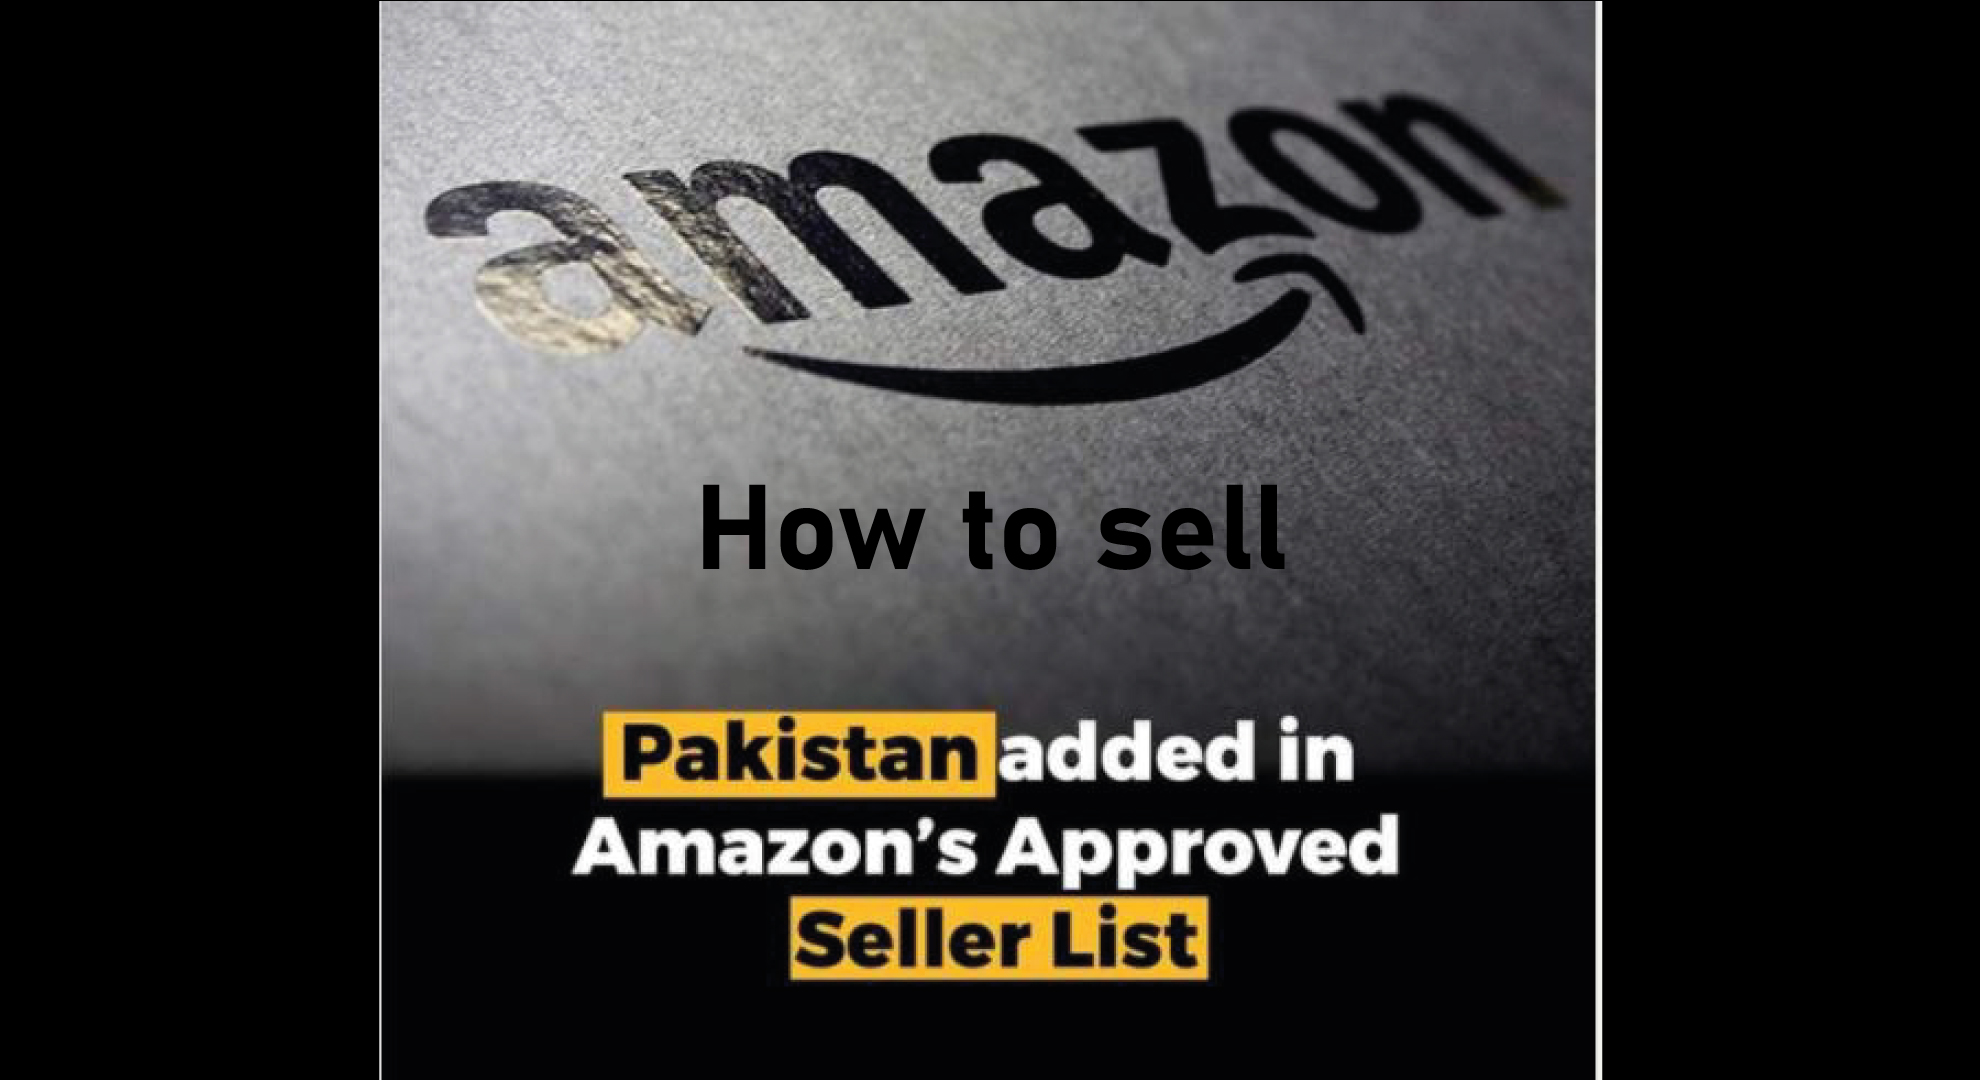 Thinking-About-How-to-Sell-On-Amazon-from-Pakistan